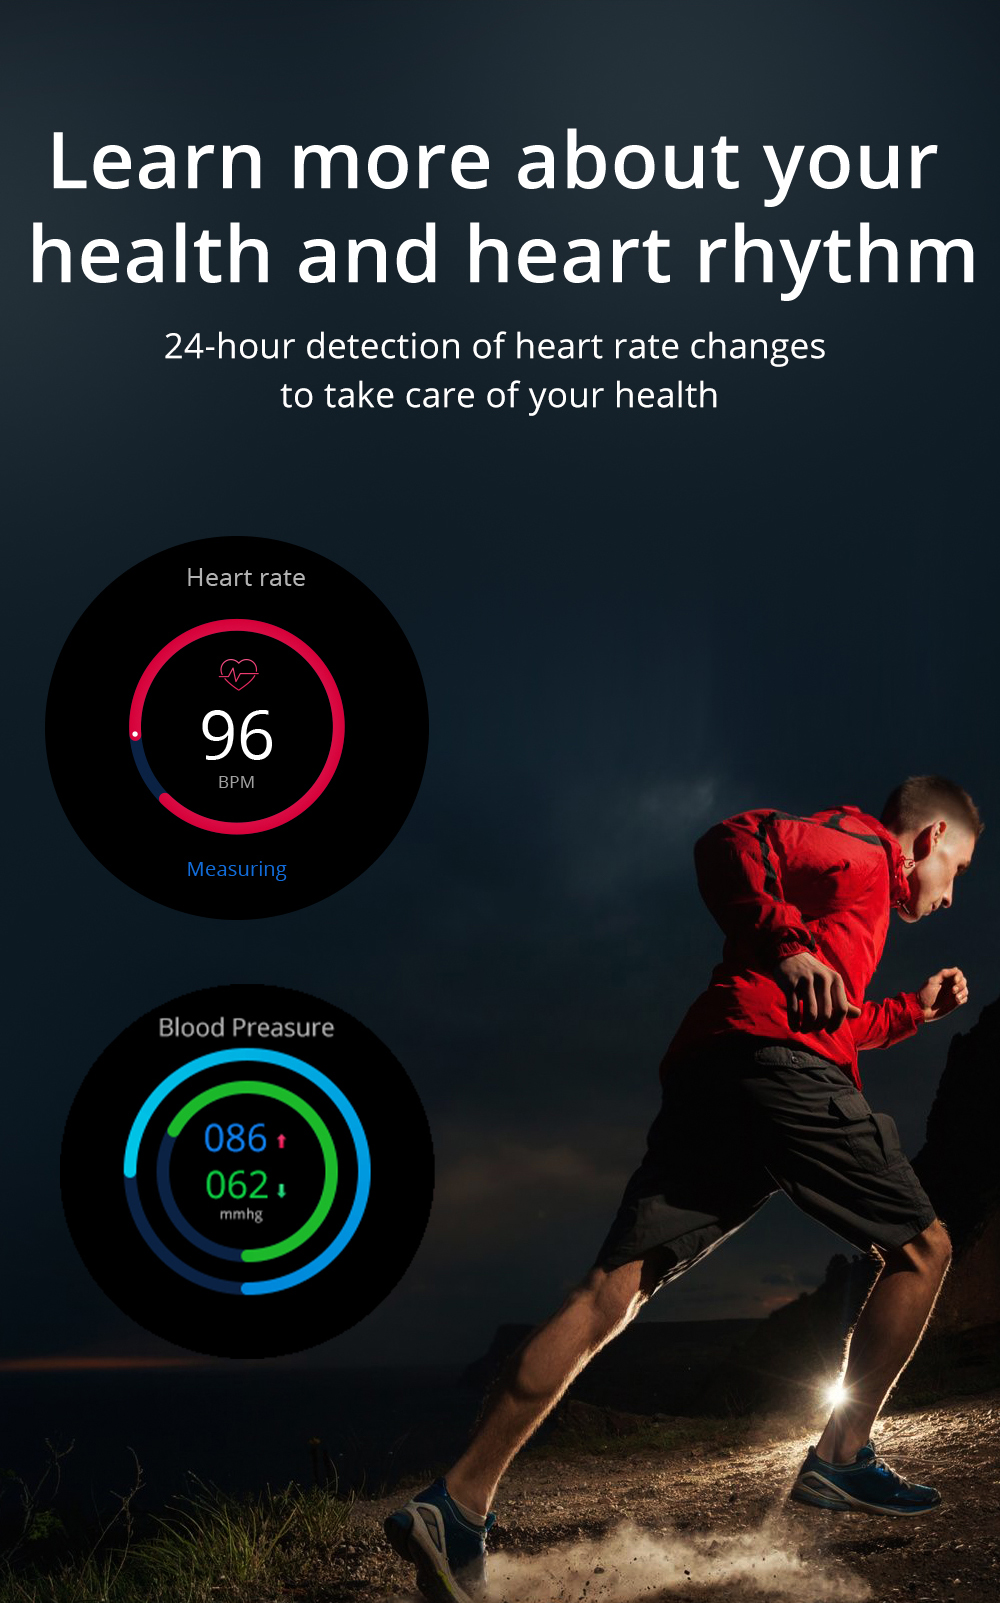 H7a95a9c13ea44dad9cca96048e5bd522K LOKMAT ATTACK Full Touch Screen Fitness Tracker Smart Watch Men Heart Rate Monitor Blood Pressure Smartwatch For Android iOS